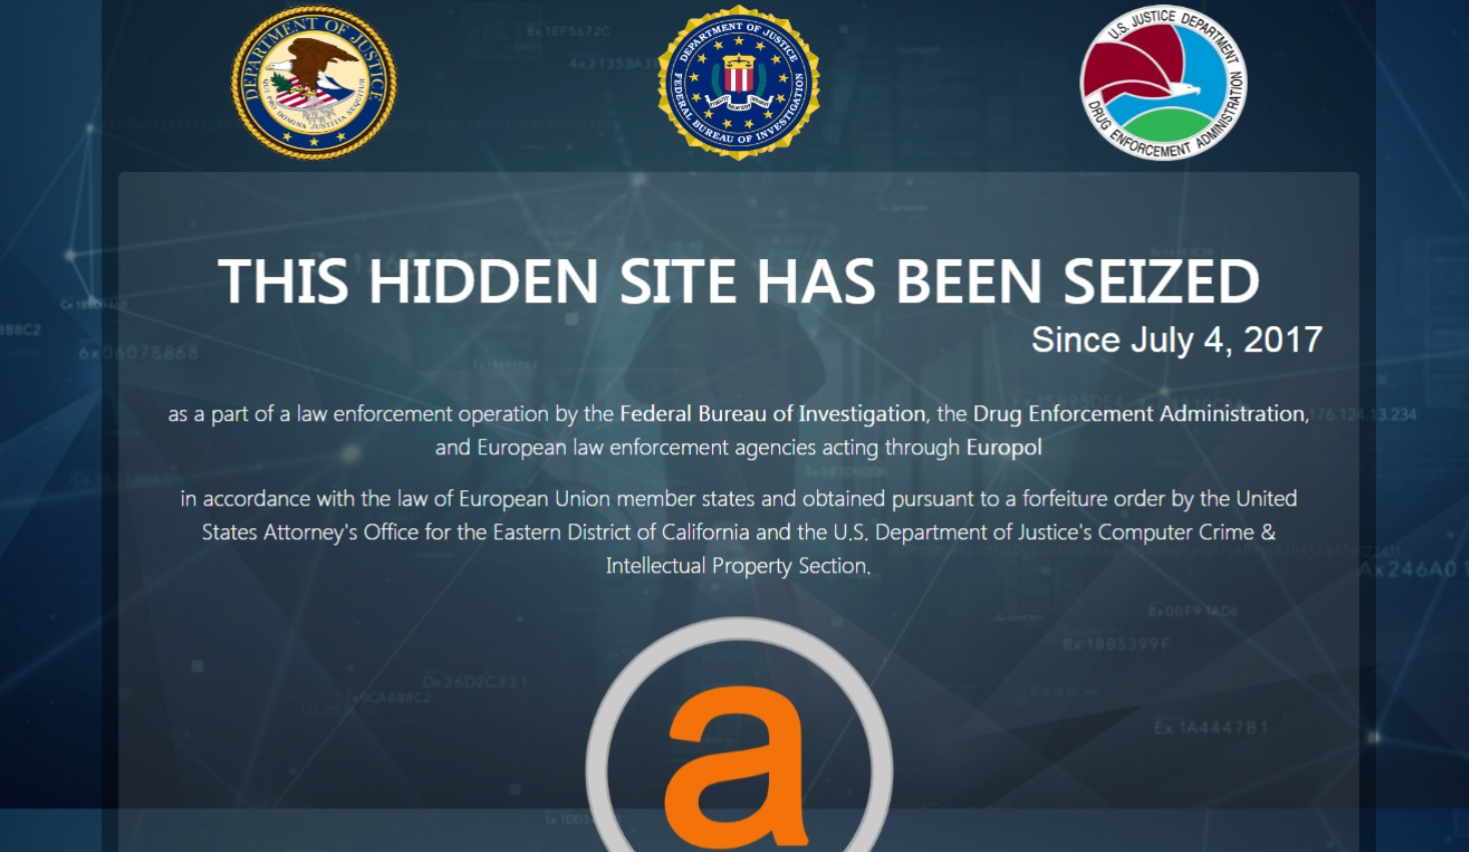 Hidden websites seized